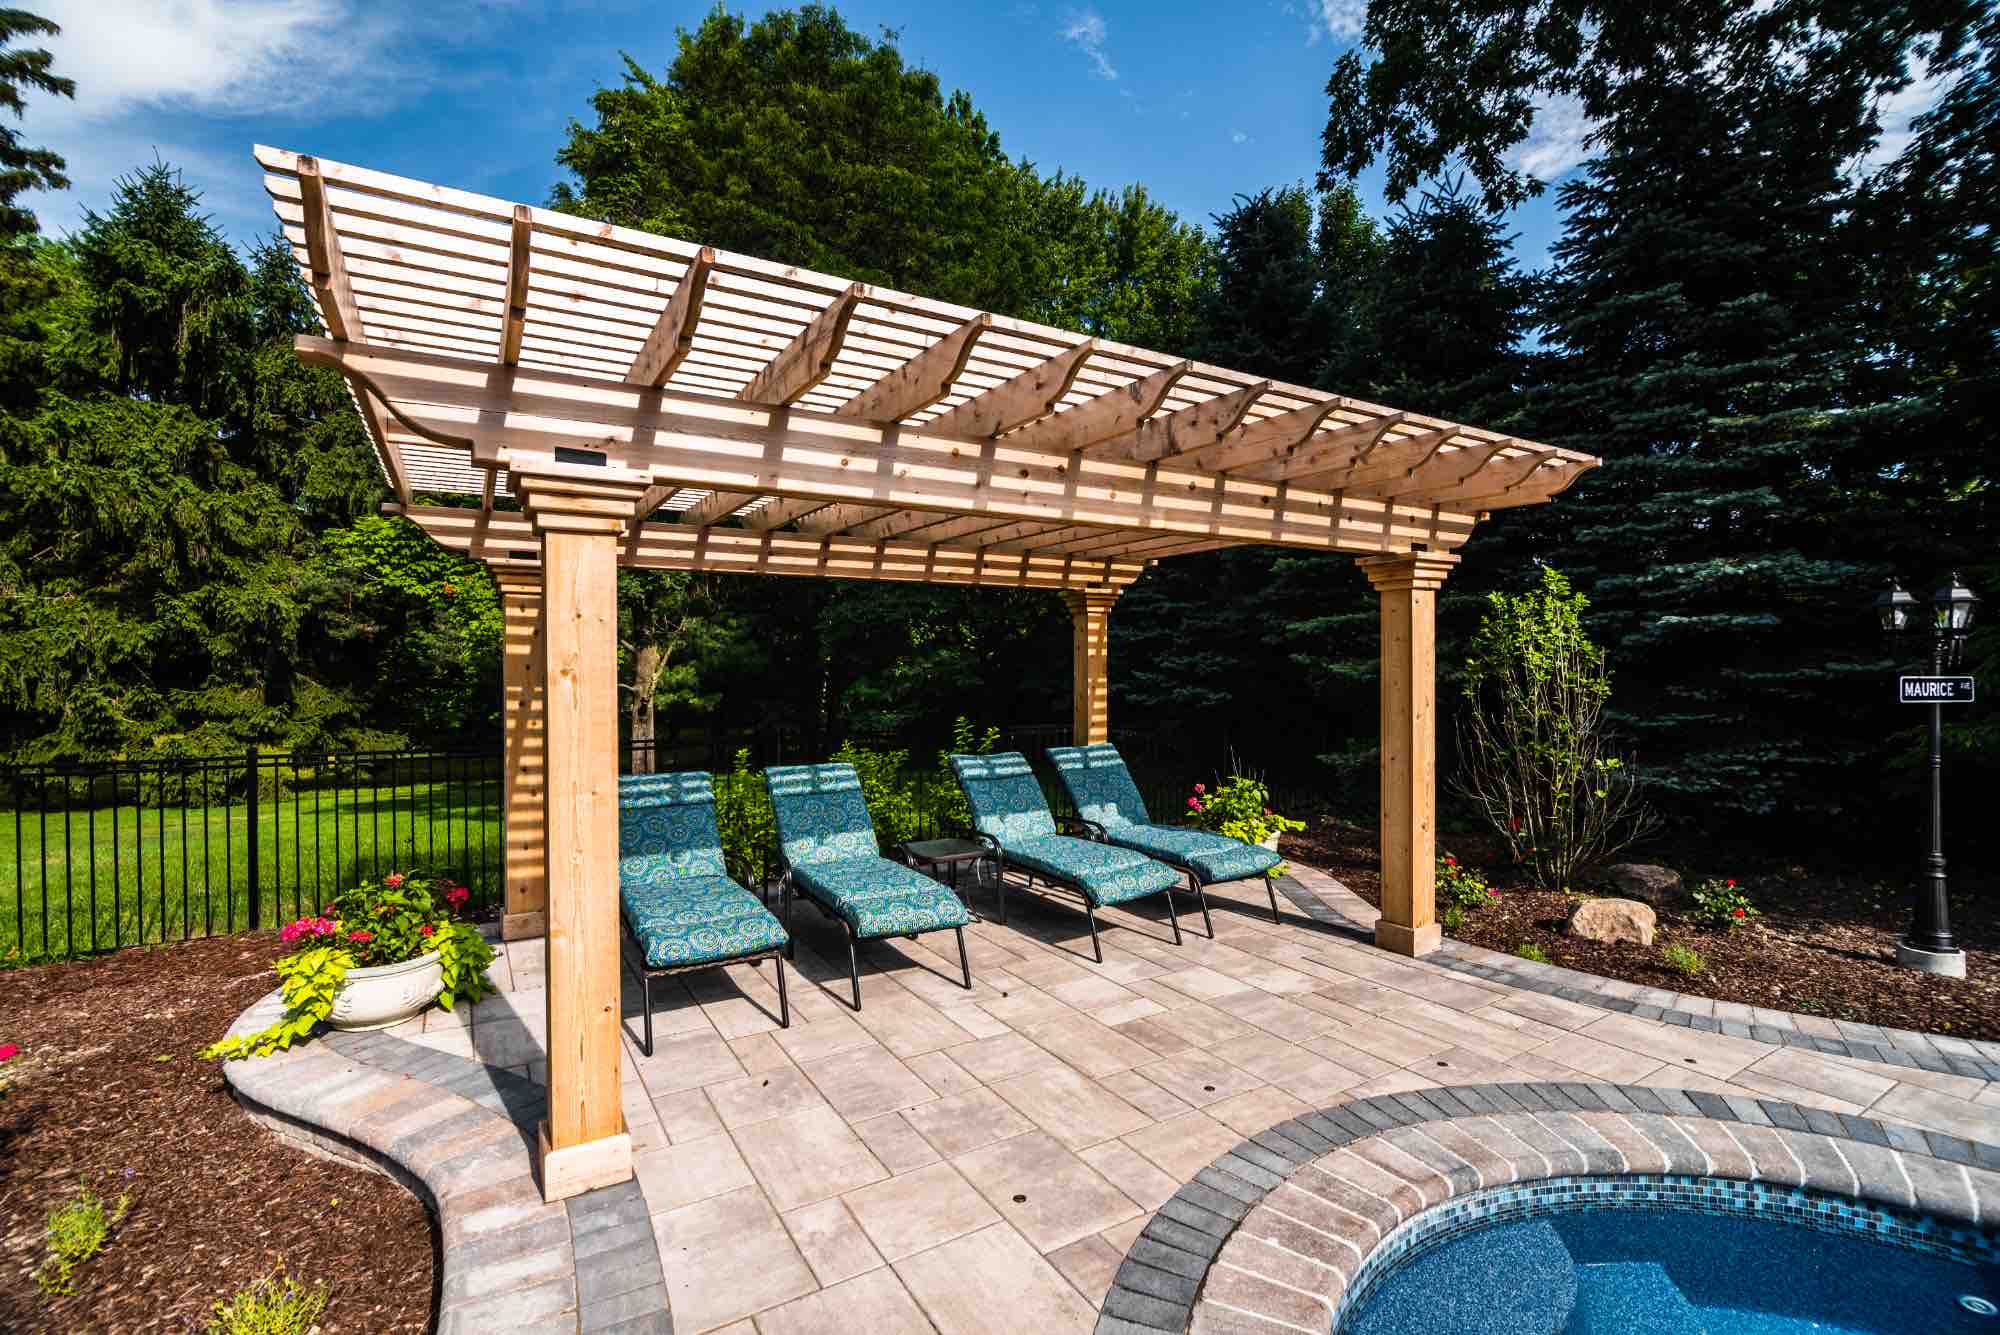 covered seated area next to backyard pool